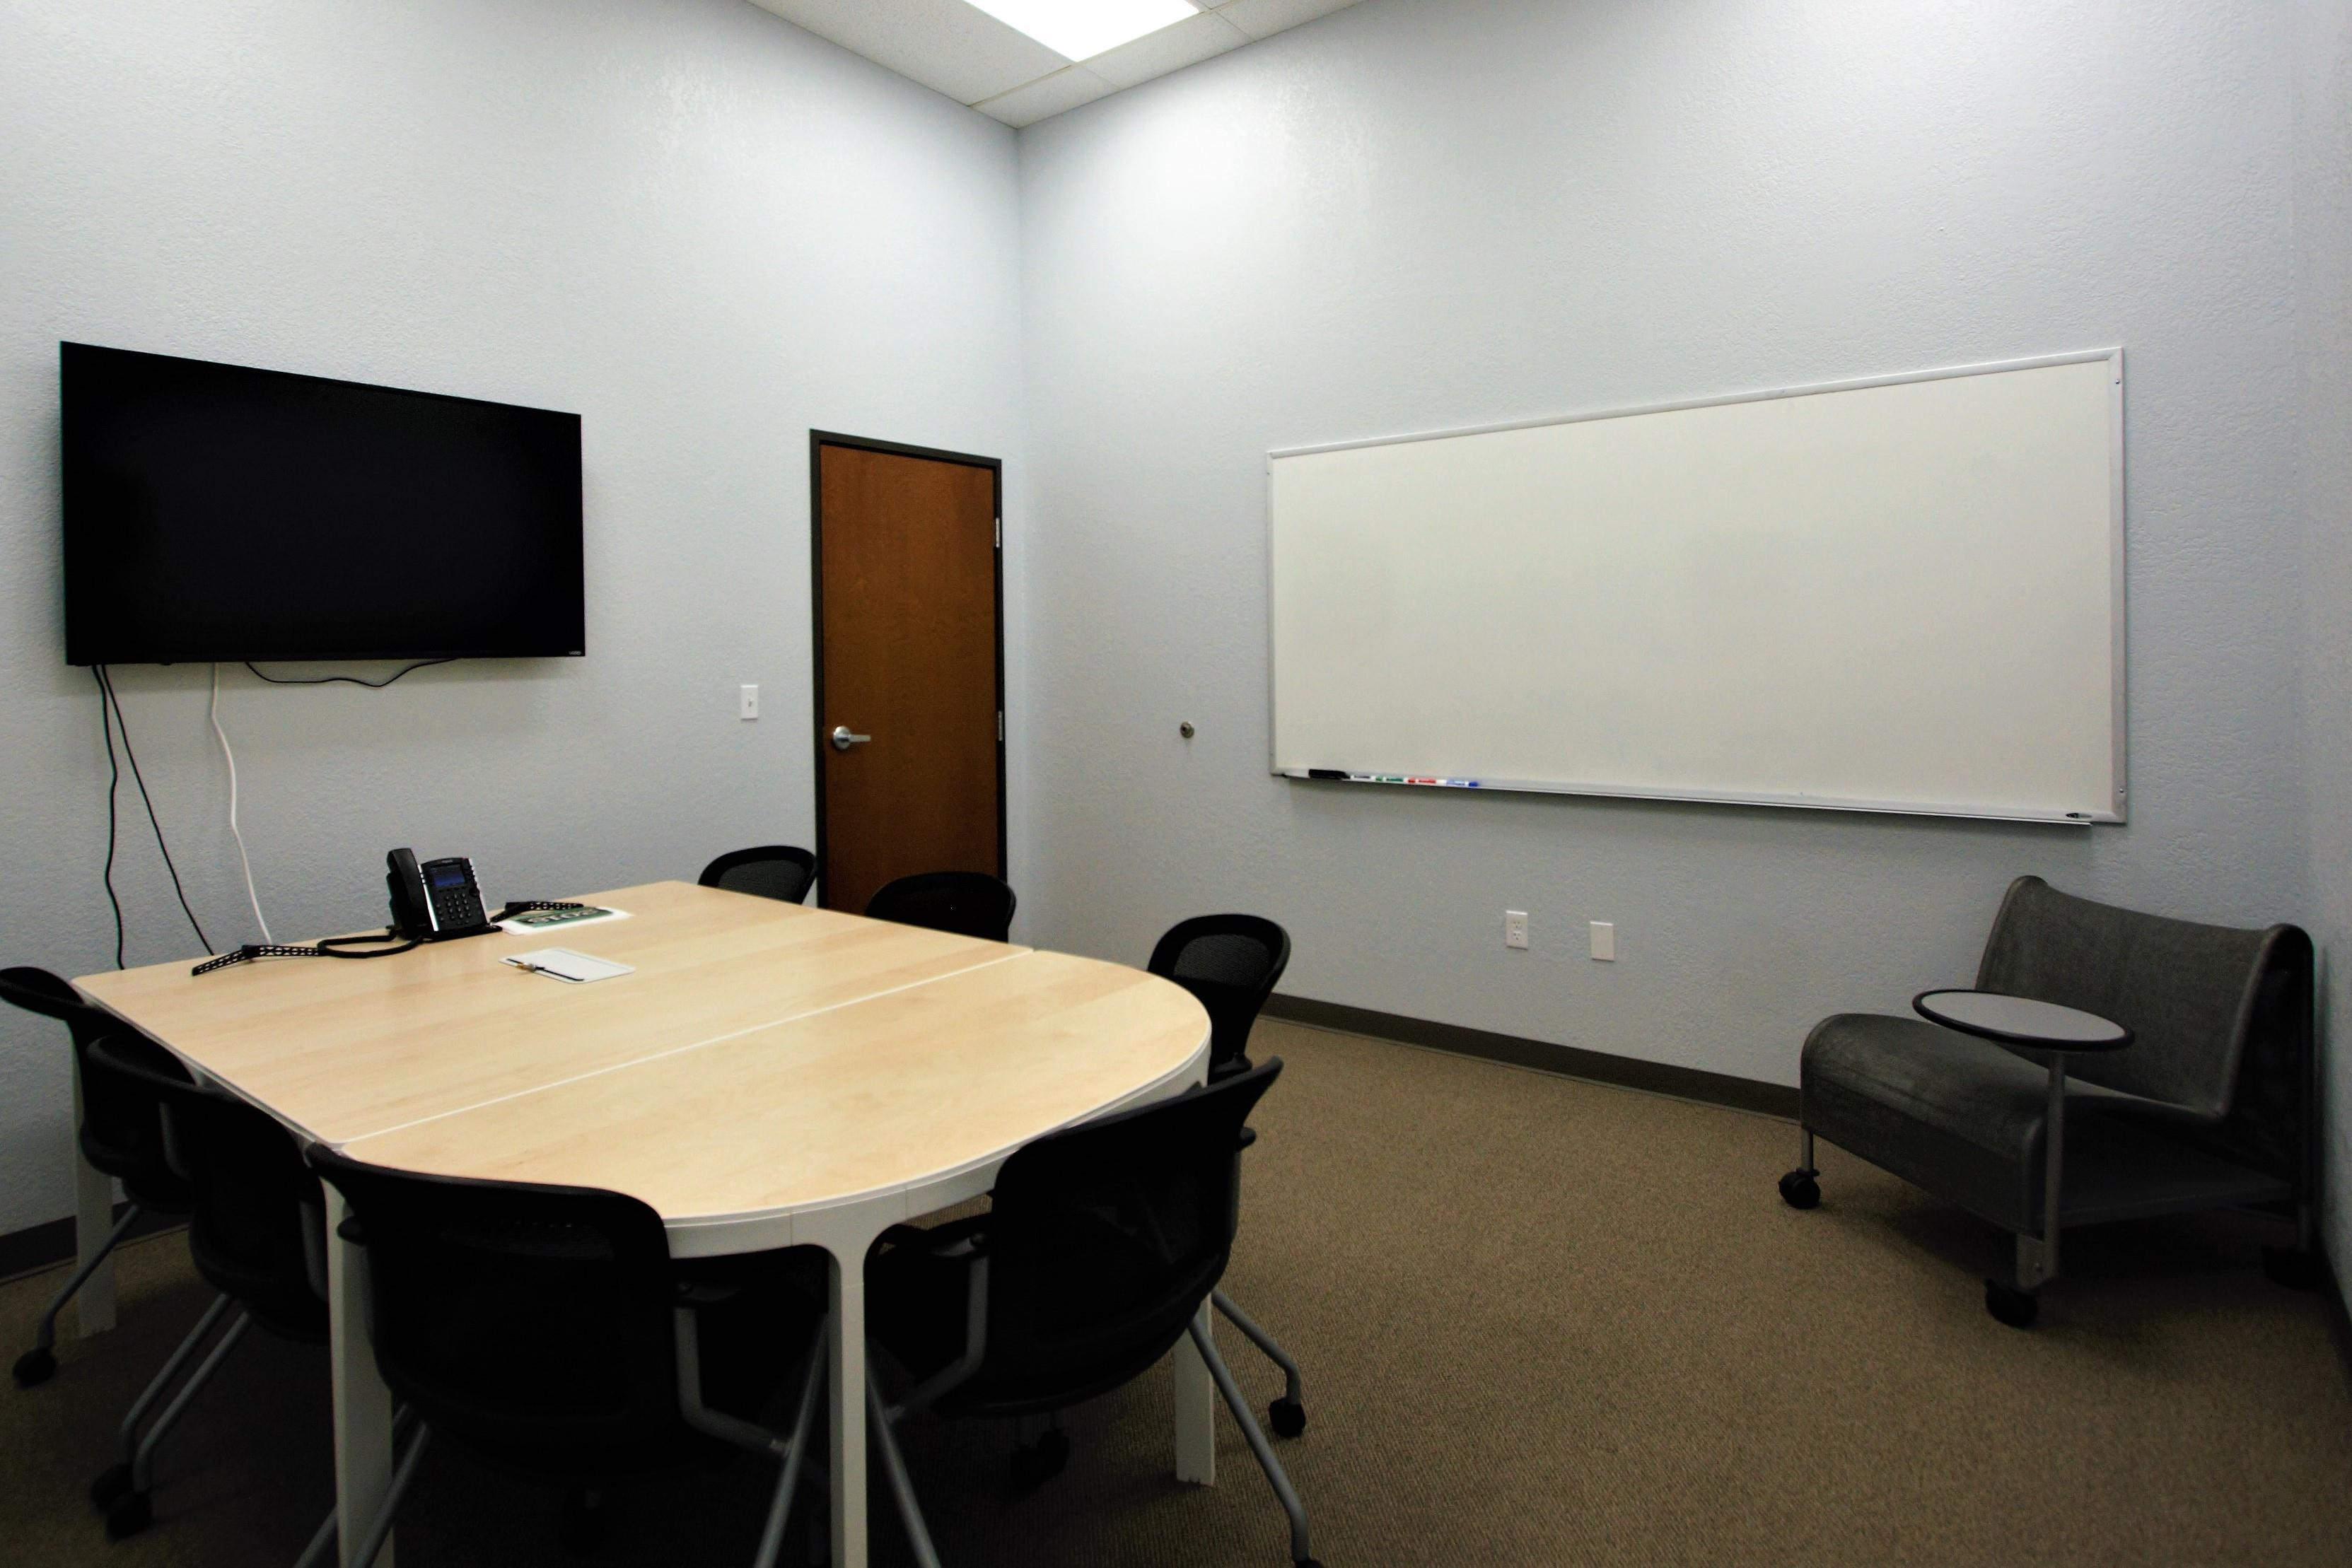 The Workplace - Project Room